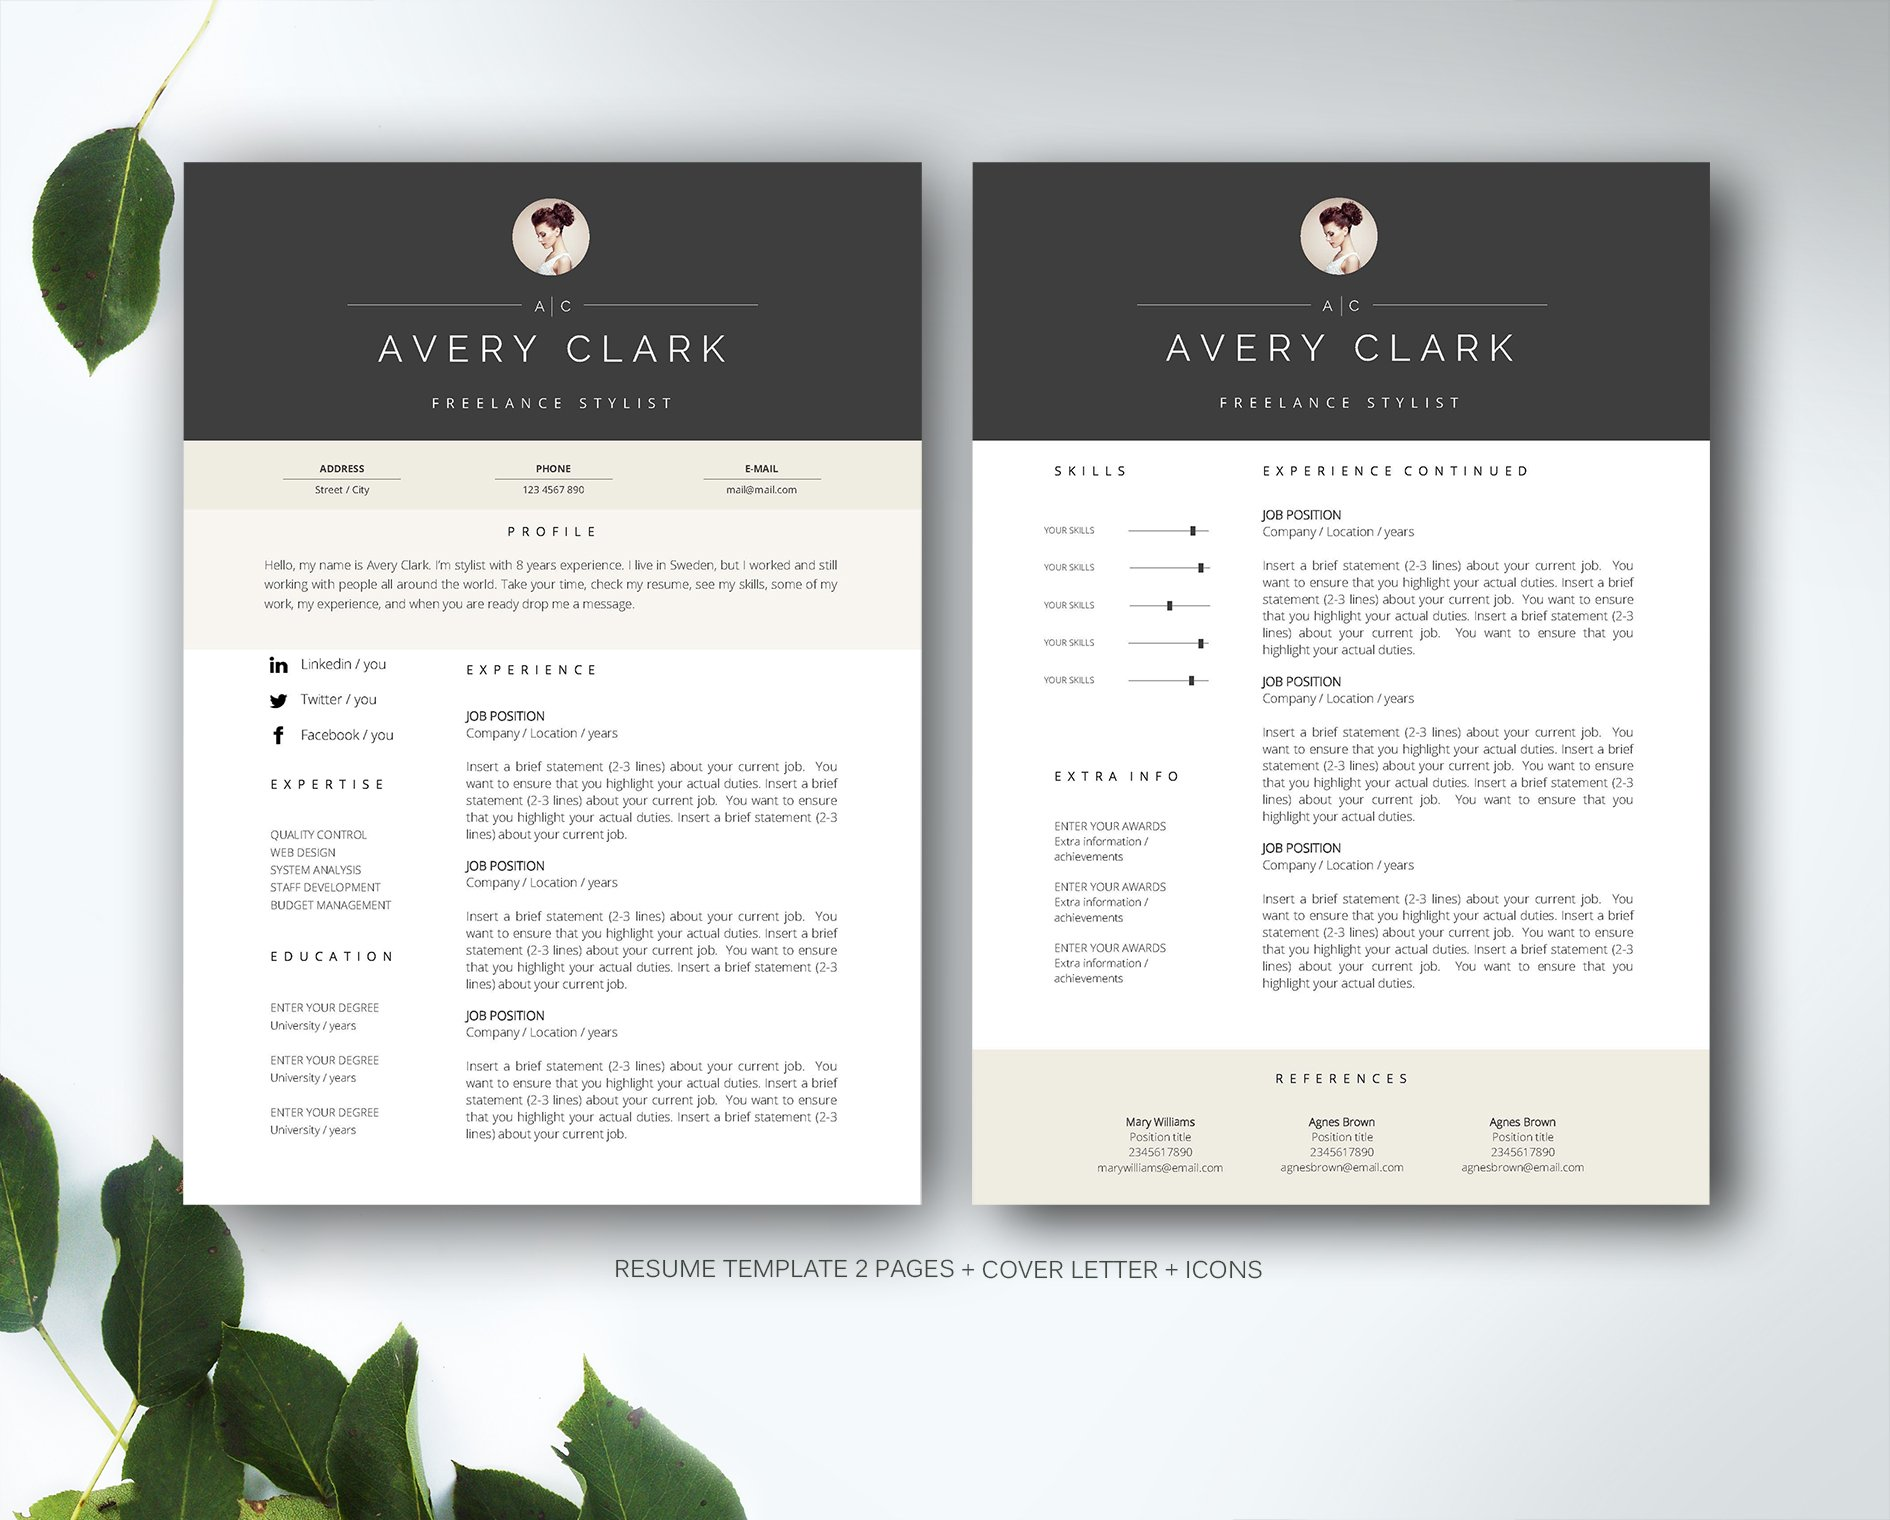 resume template for ms word resume templates creative market - Ms Word Format Resume